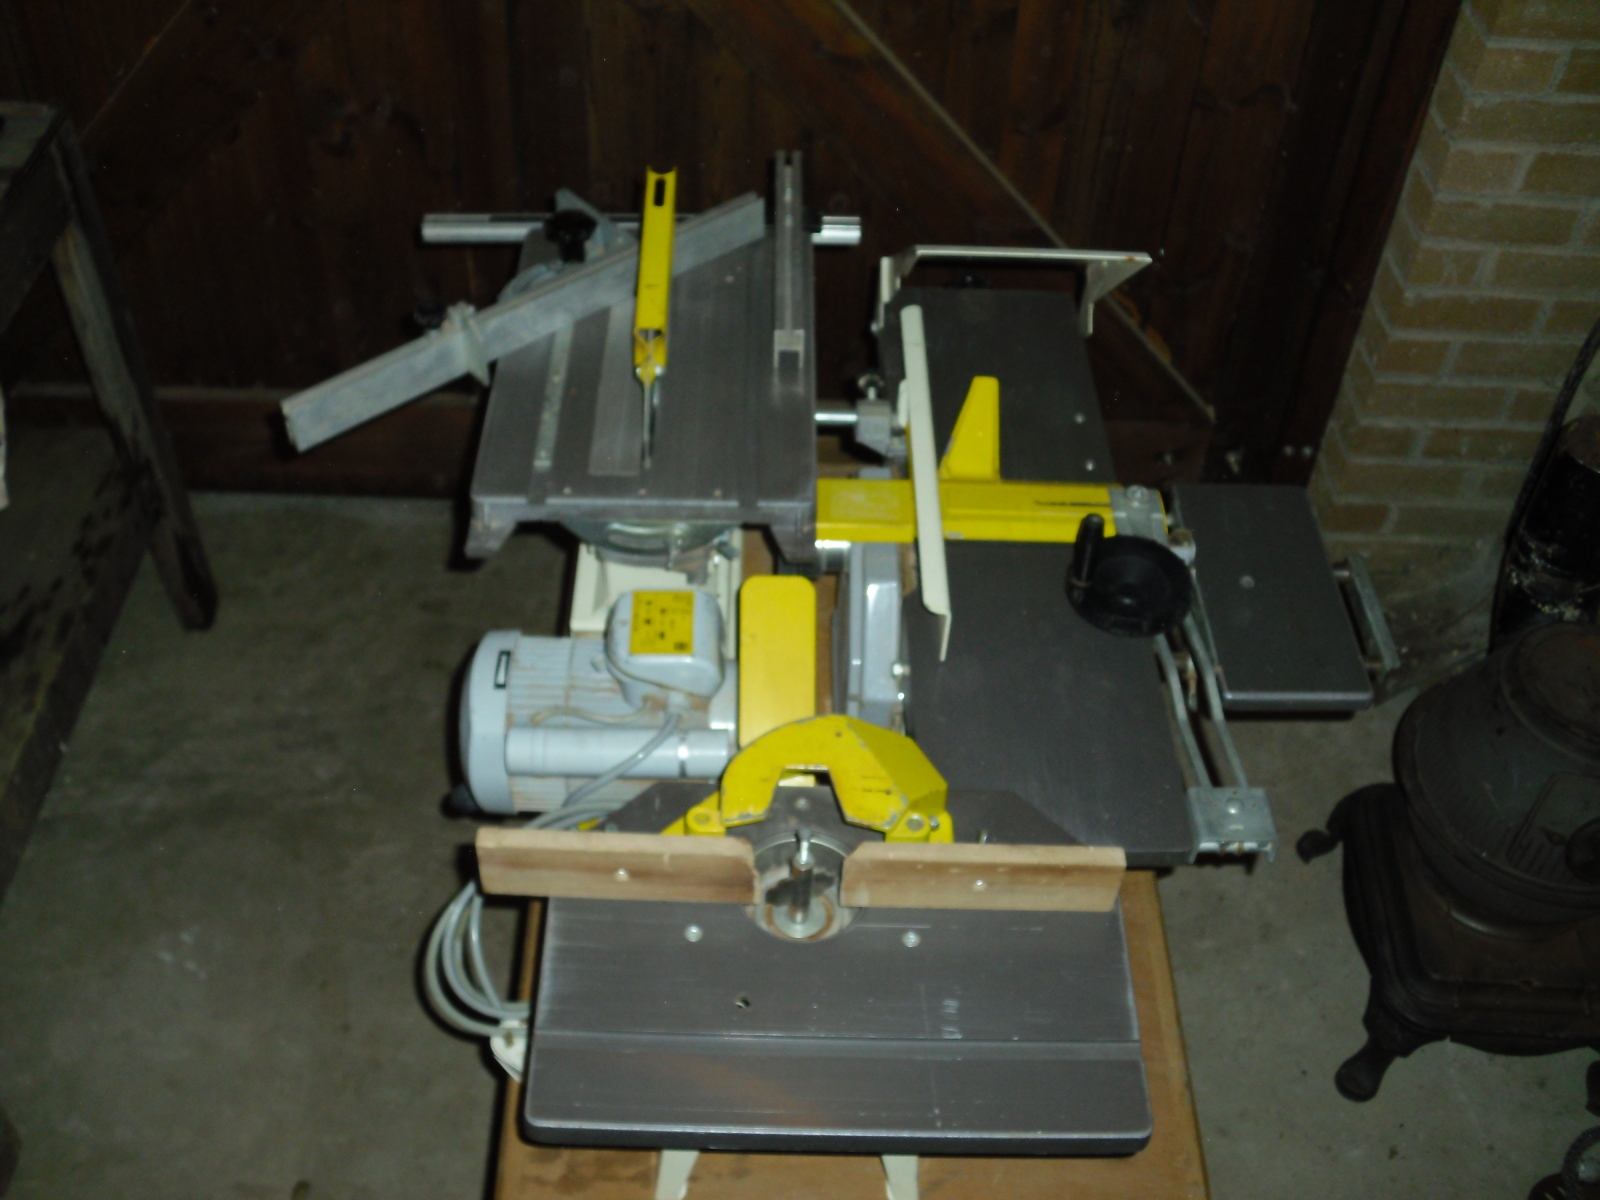 Innovative At $500, It Seemed Pricey For A Saw With A Softstart Router Motor, But I Got It For Pennies On The Dollar Through Popular Woodworking  My Present Table Saw Is Part Of A Combination Machine Kitty From Belgium With A Jointer, Planer,